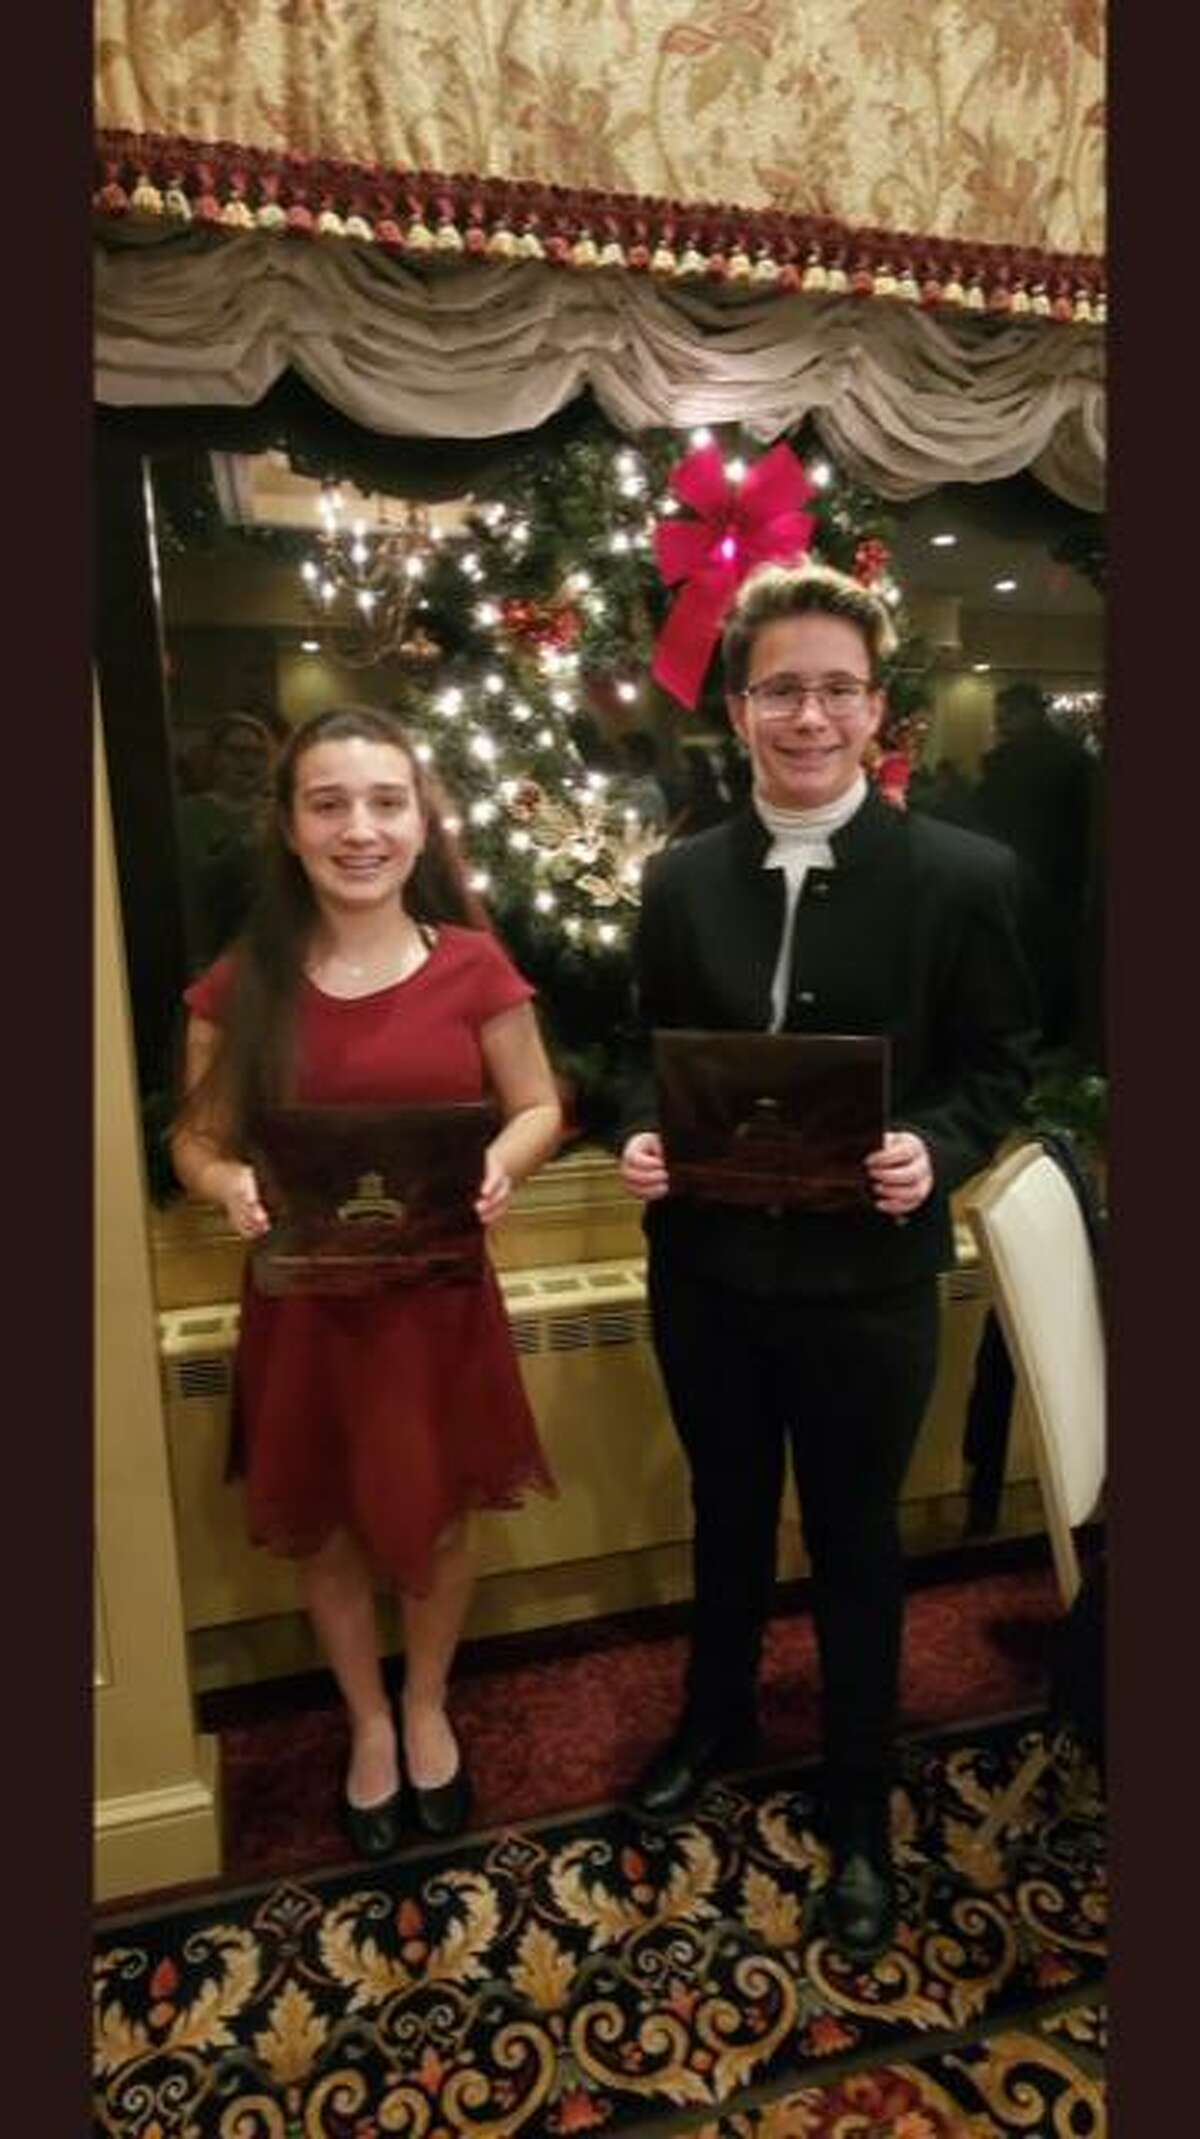 Shelton Intermediate School eighth graders Marissa Manzo and Robin Uhrynowski, who each earned Connecticut Association of Public School Superintendents (CAPSS) Superintendent/Student Recognition Awards earlier this month.